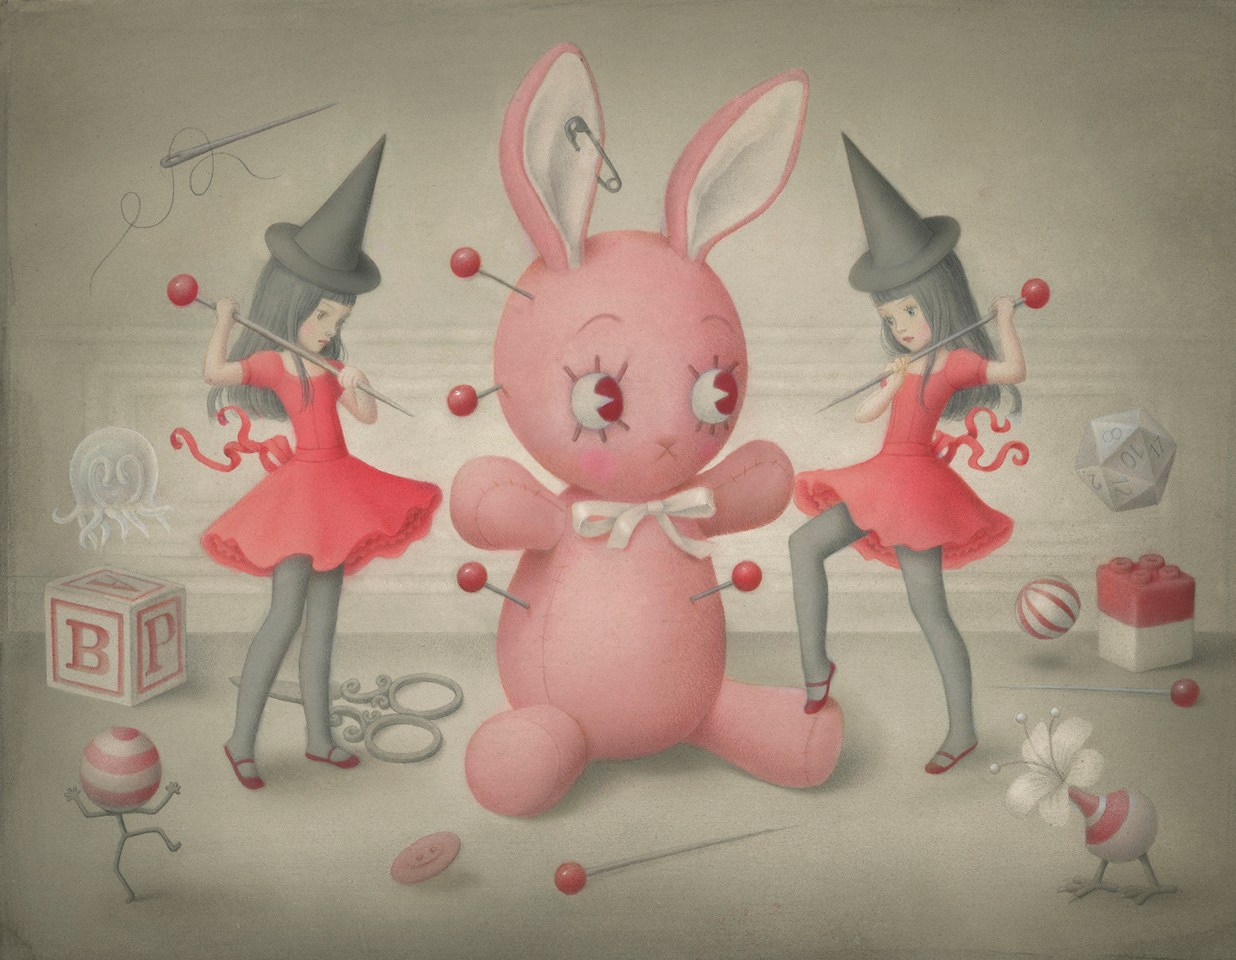 Two witches putting pins in a giant rabbit effigy